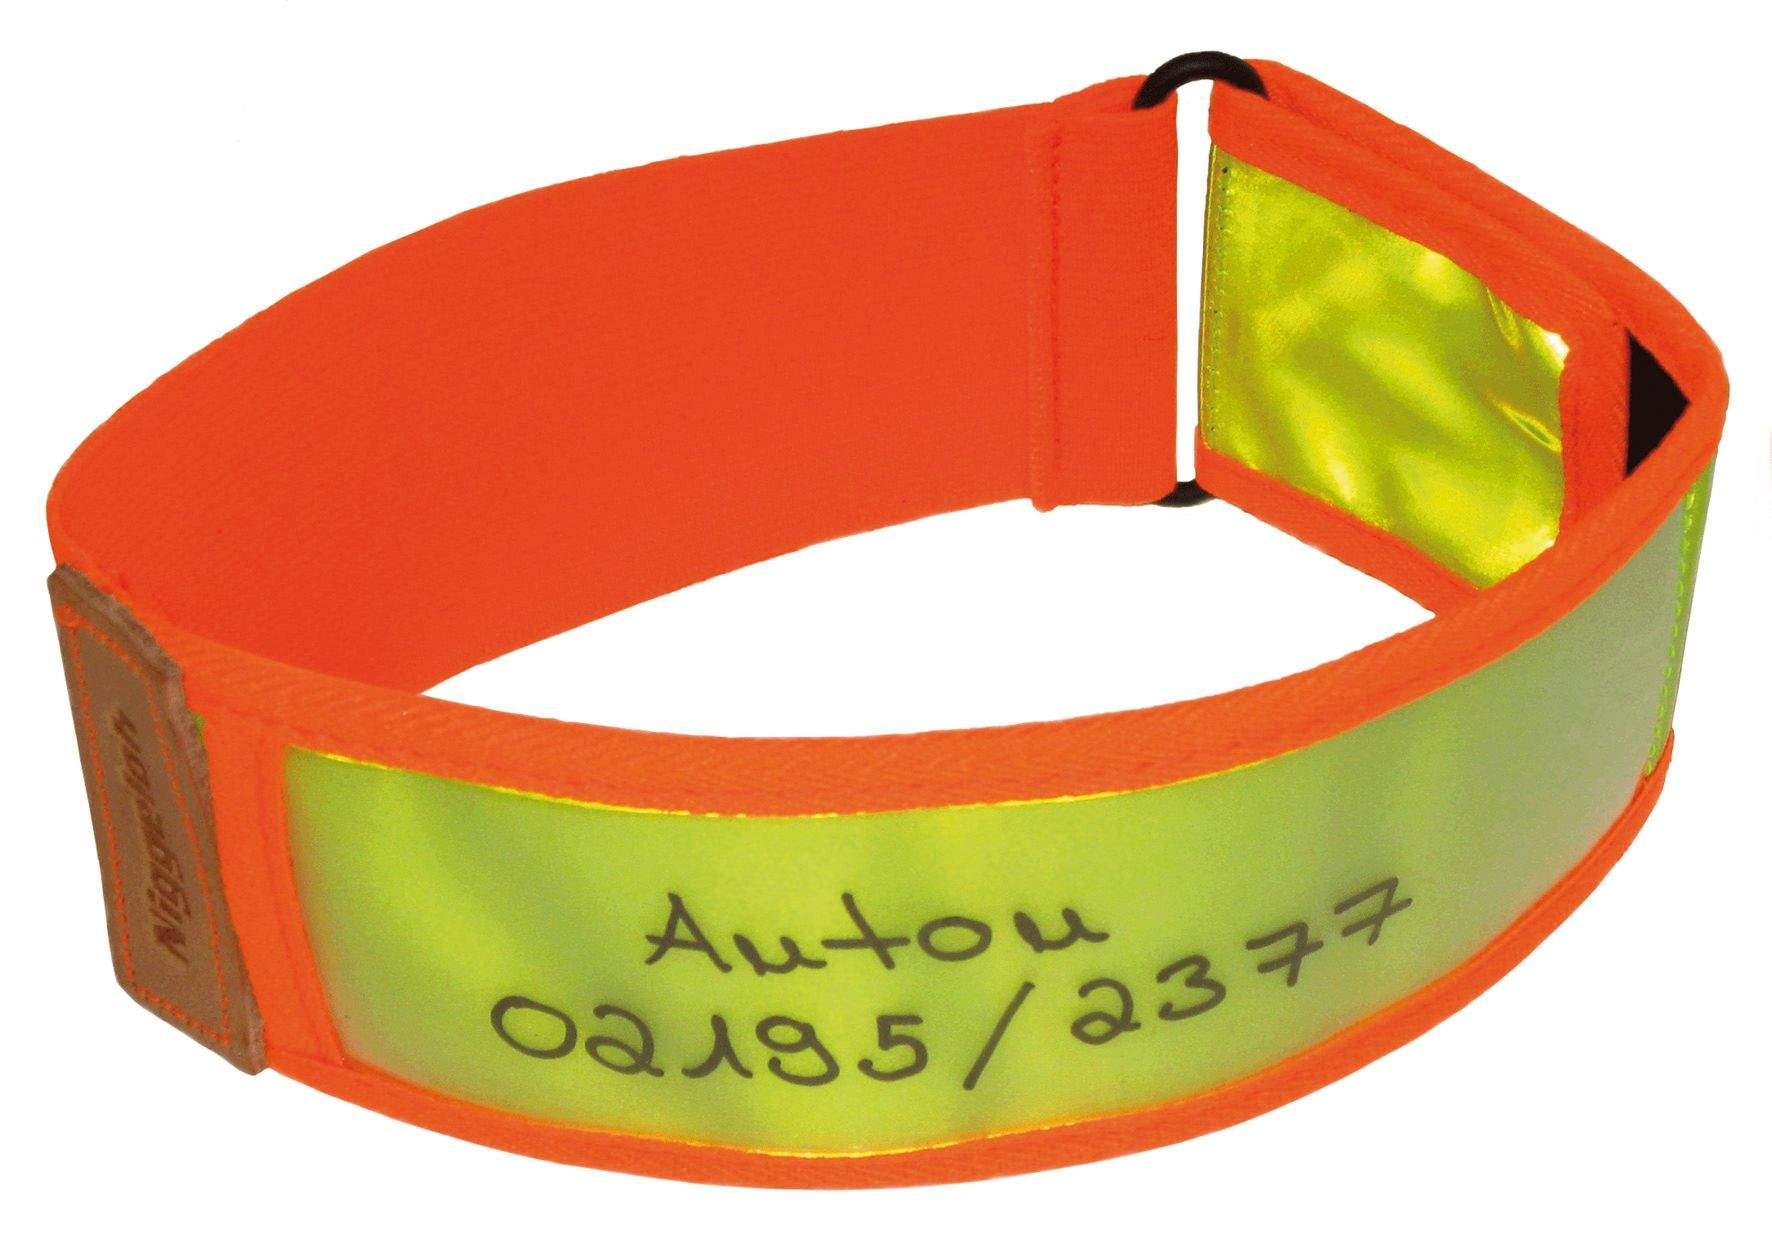 101100027 NIG Collier Réflective Jaune / Orange XS 30-40 cm - N2151